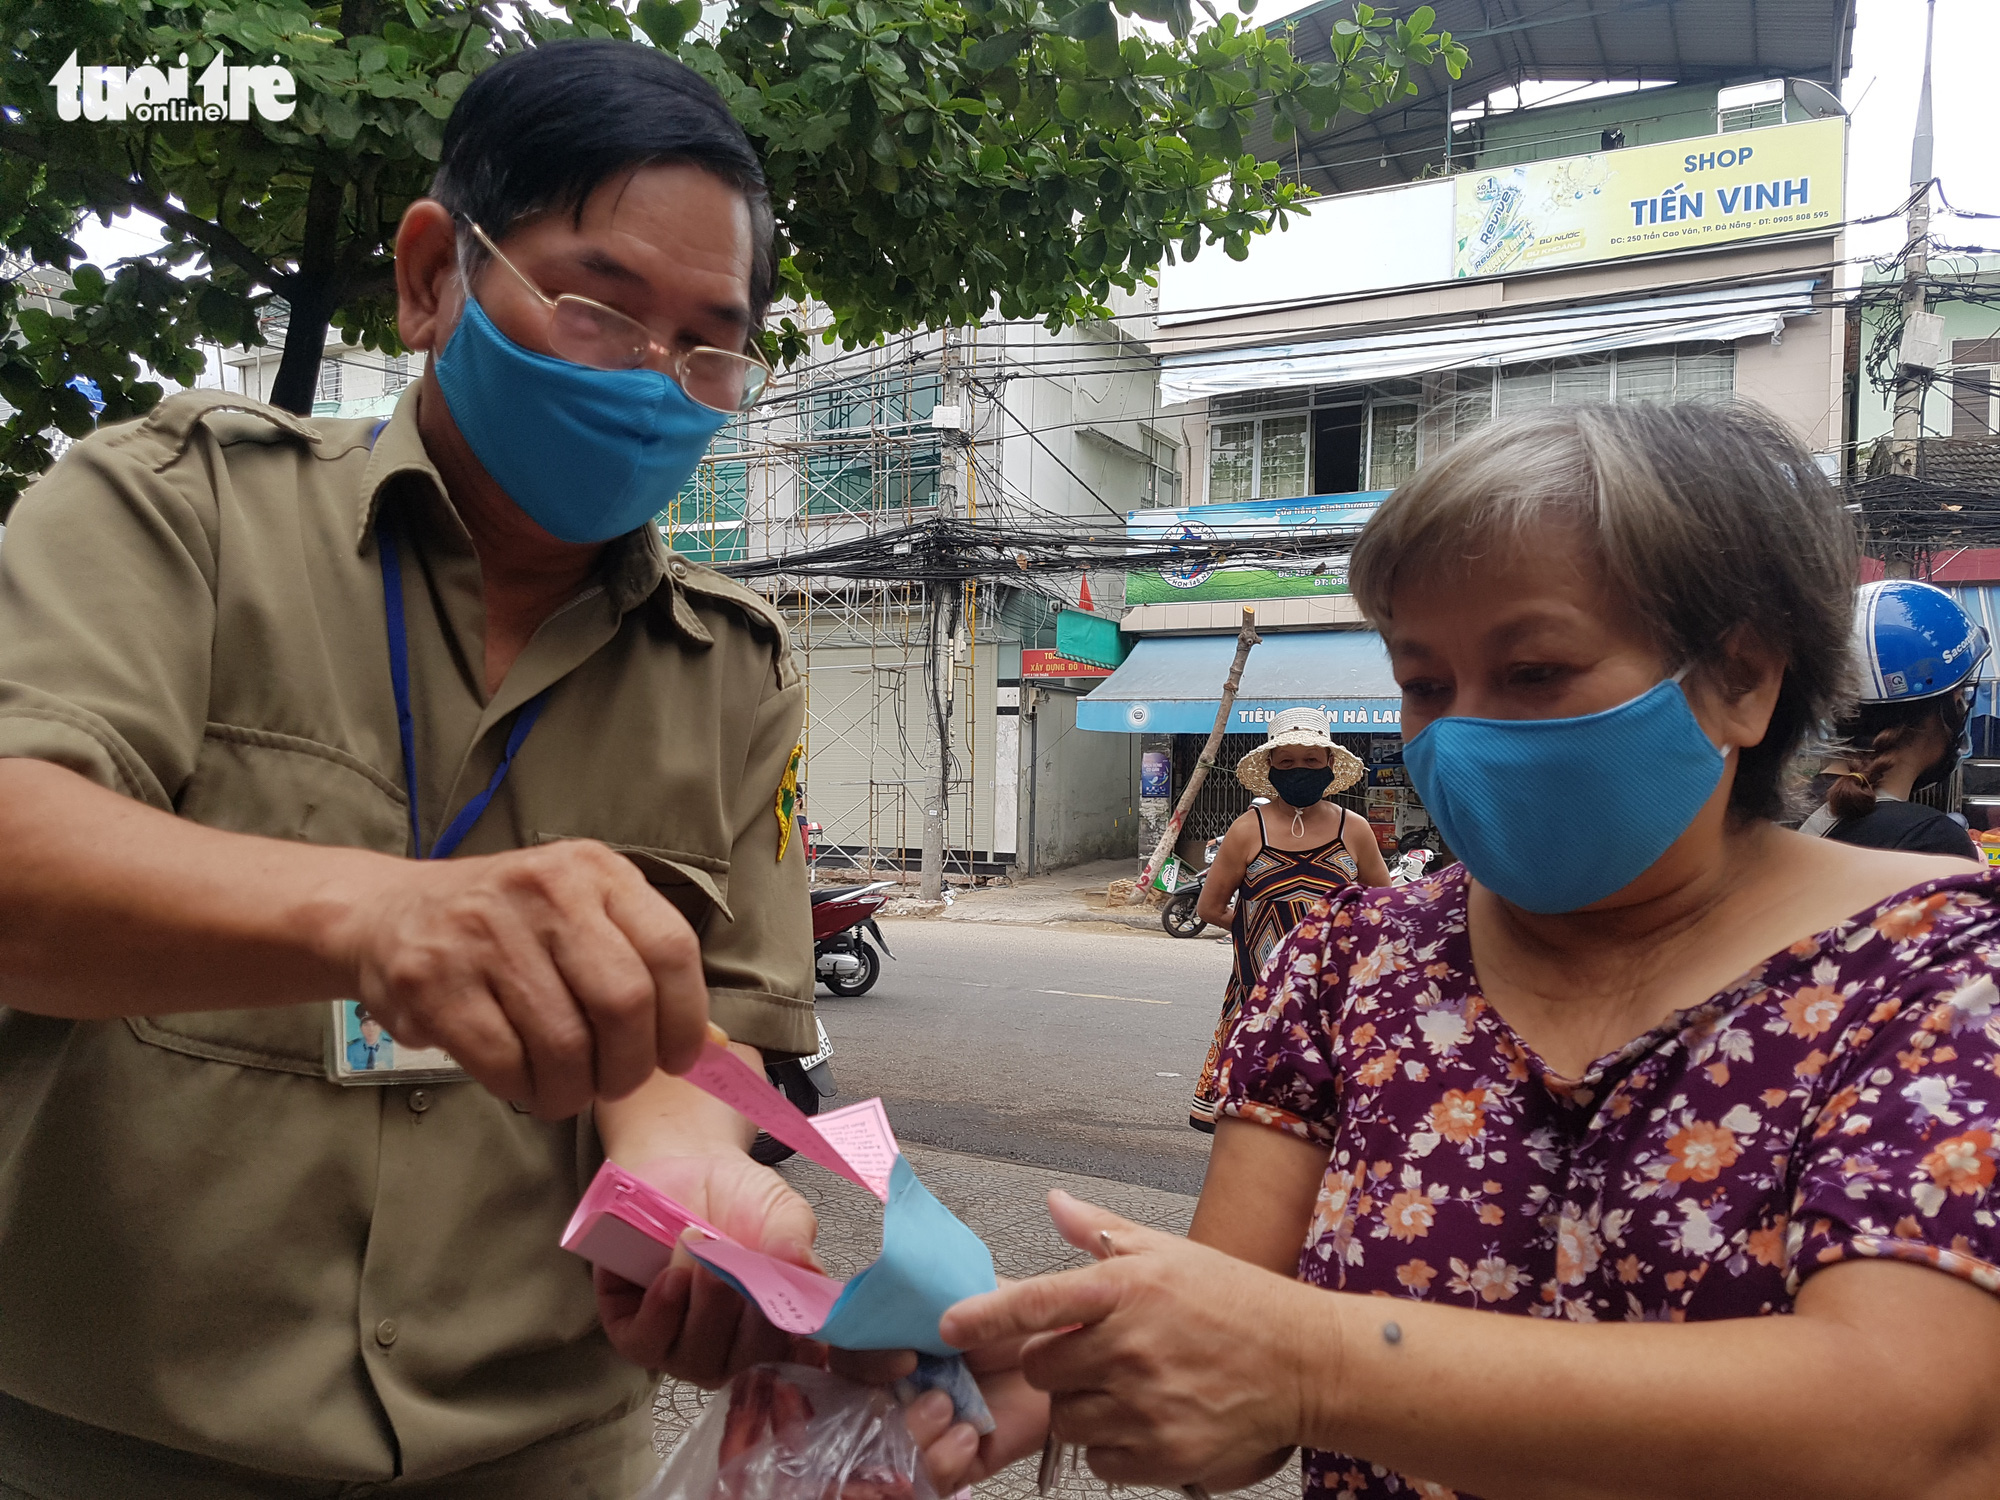 Da Nang restricts market visits with 'access tickets'